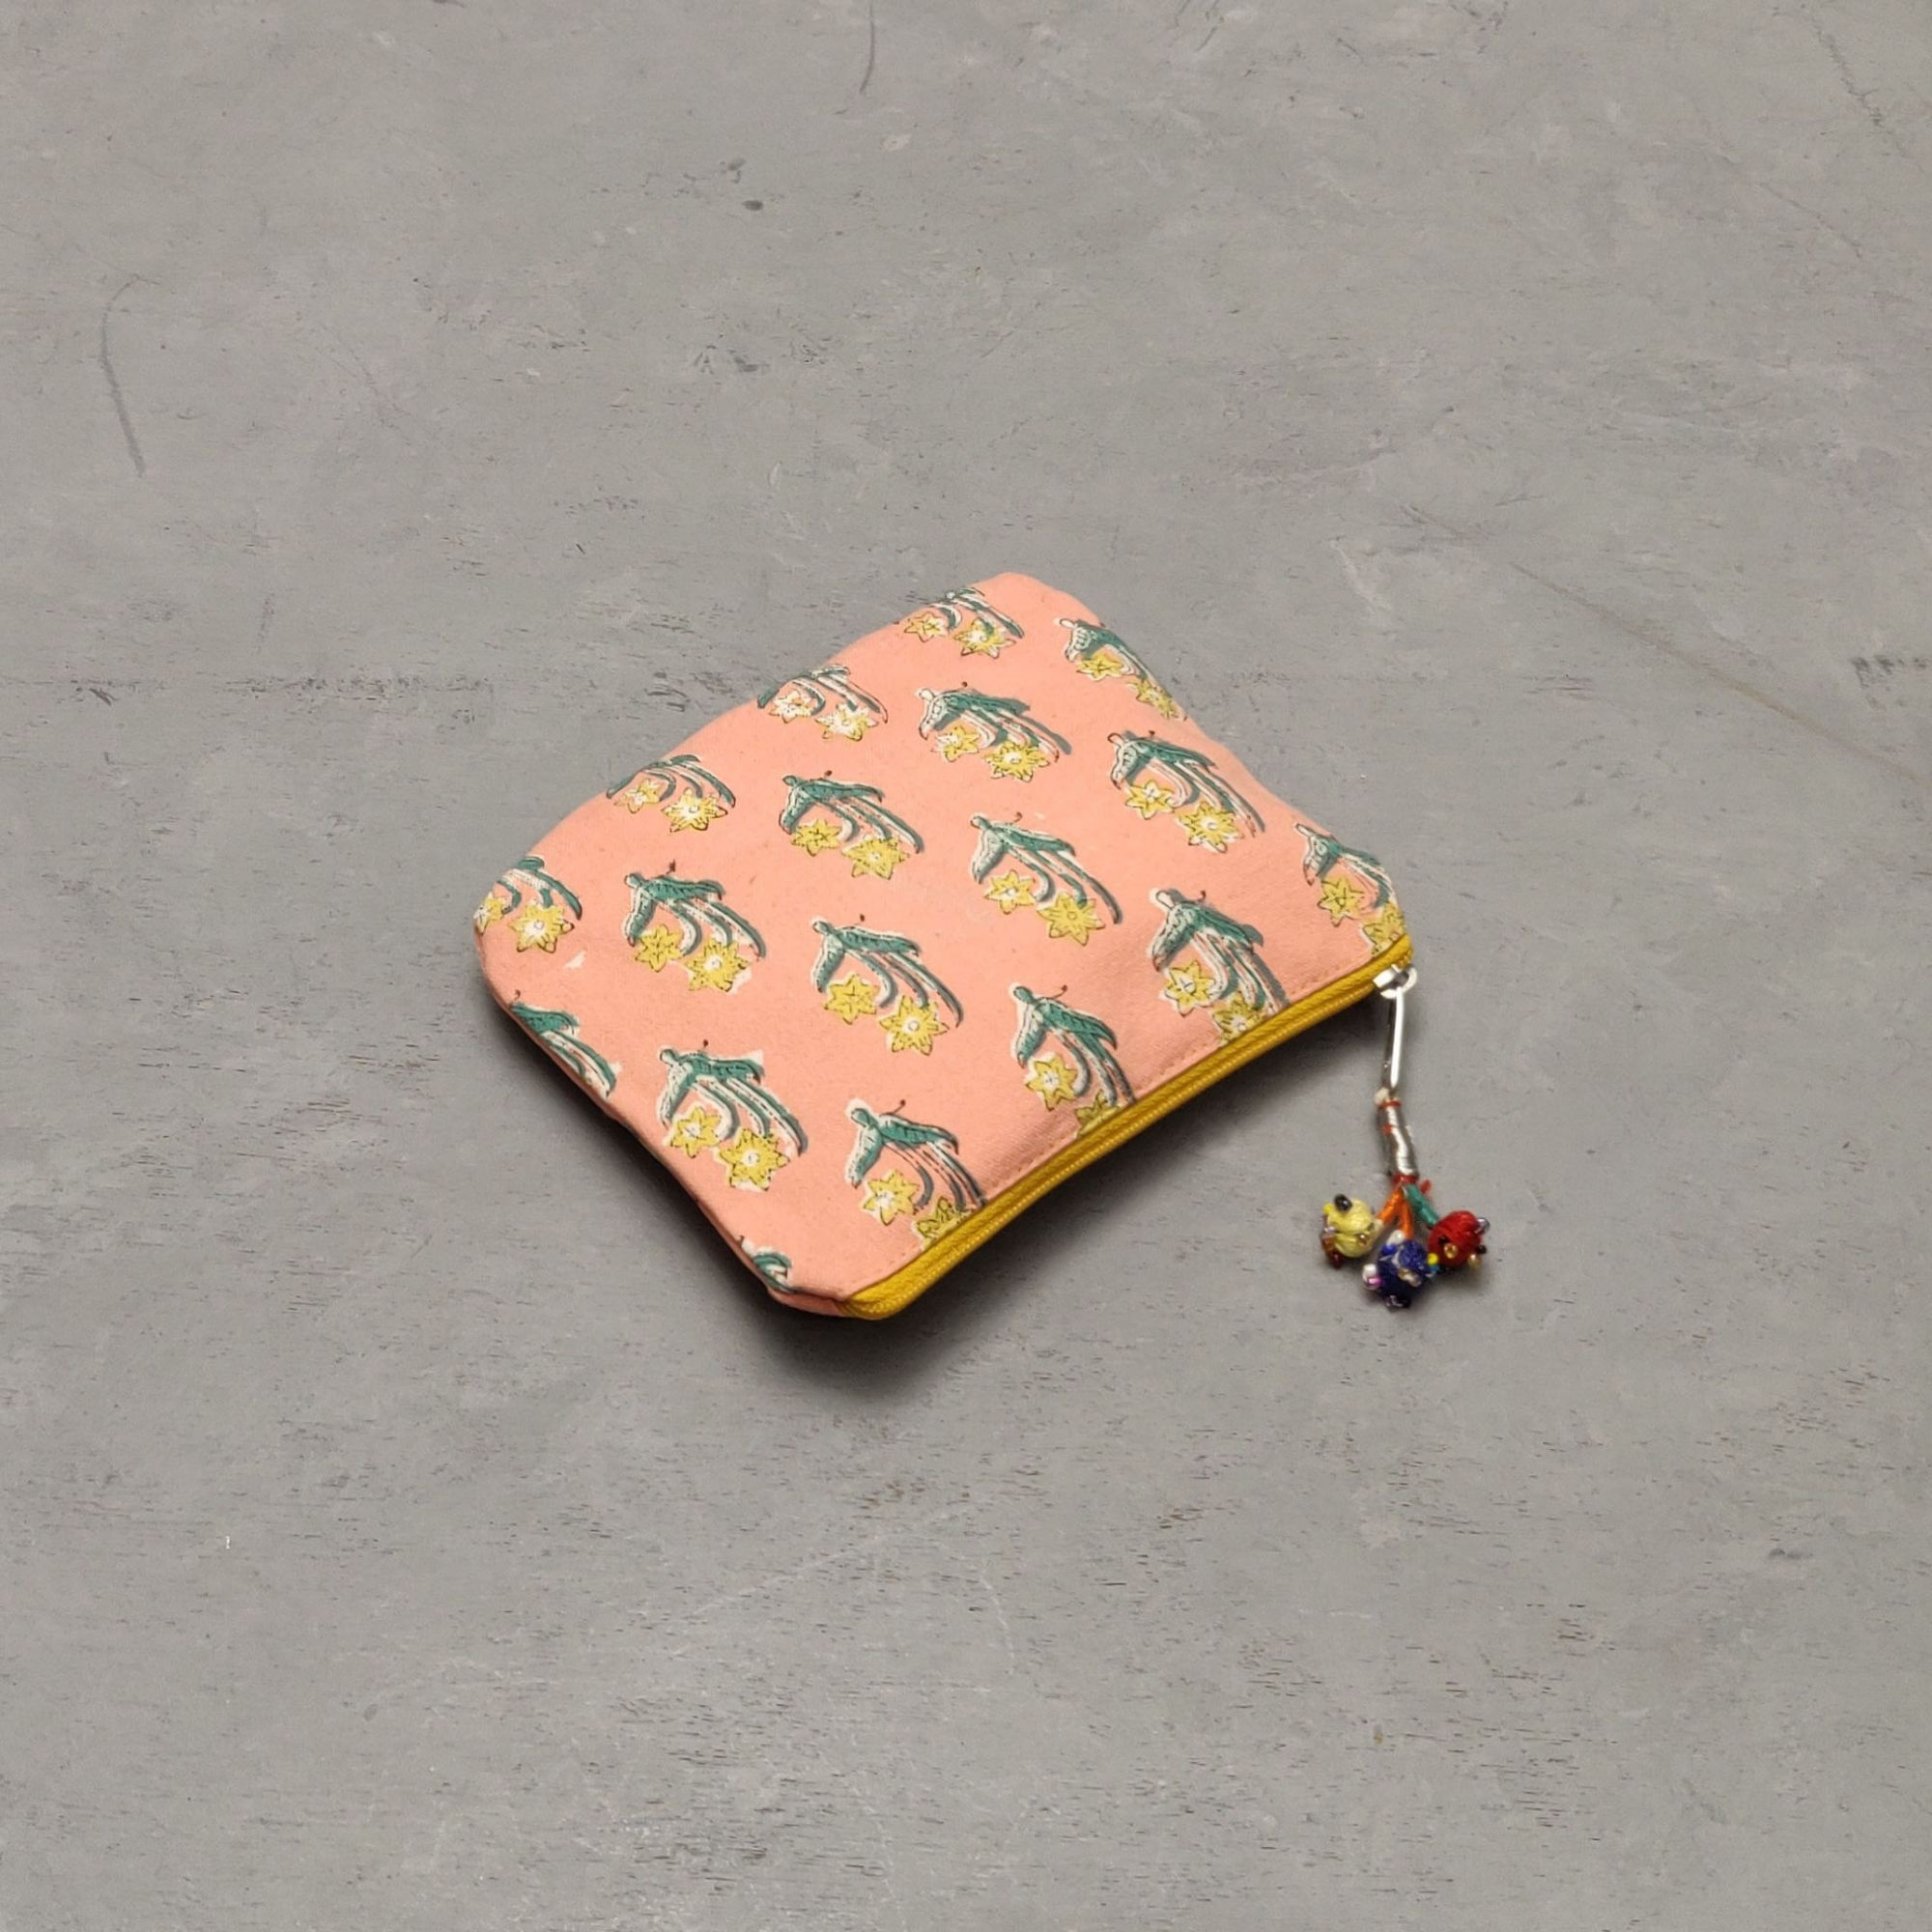 Peach with Yellow Floral Details Small Canvas Pouch